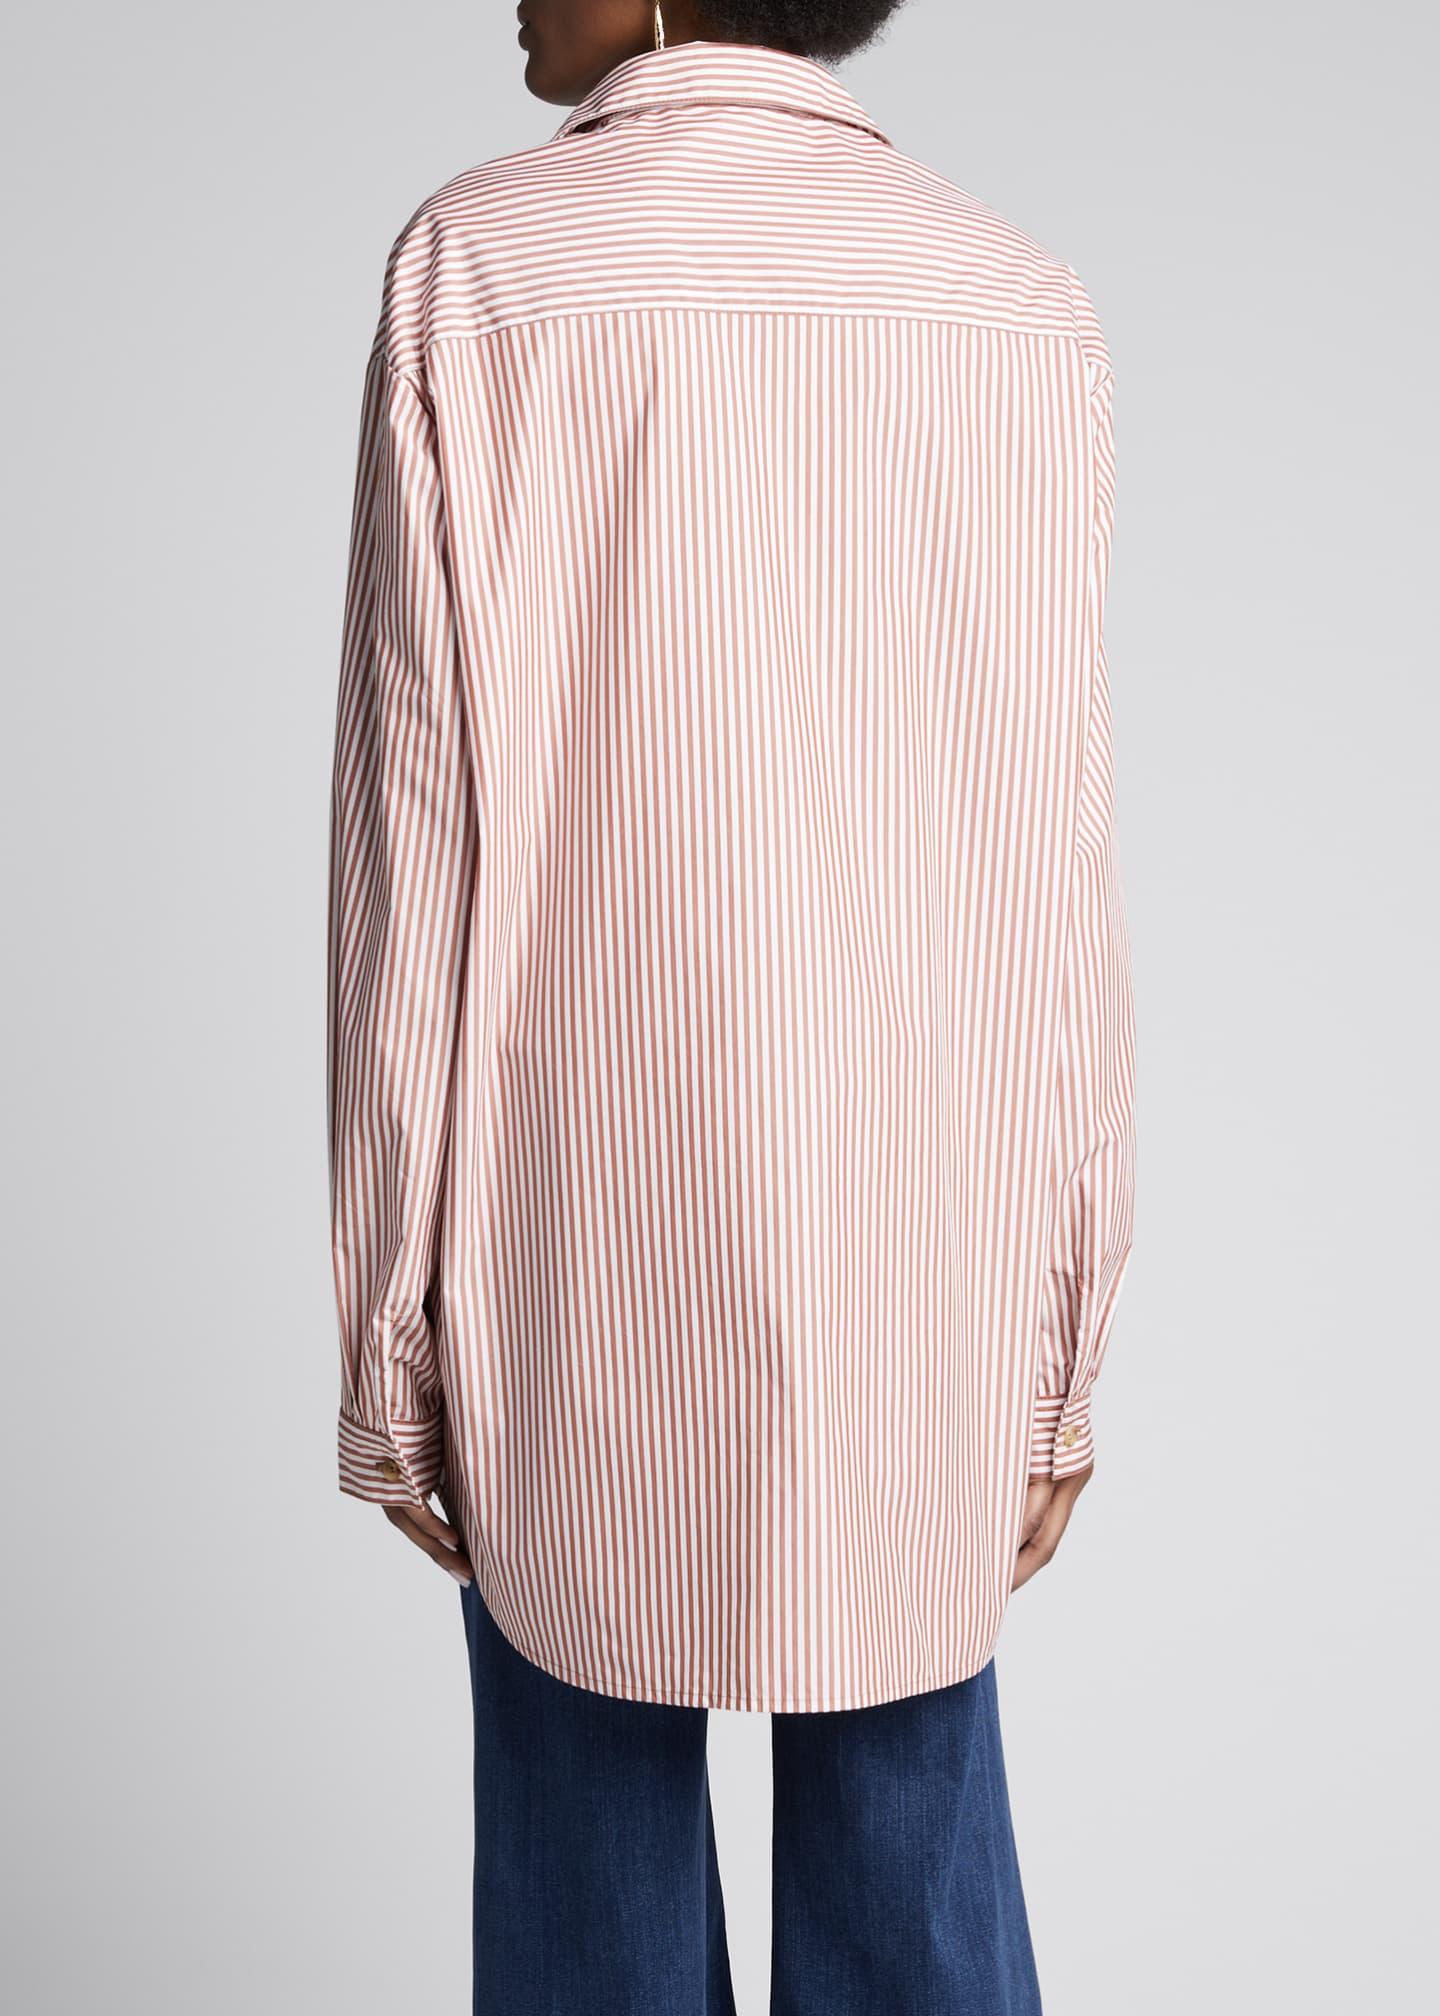 Image 2 of 5: Alfie Oversized Striped Button-Down Shirt